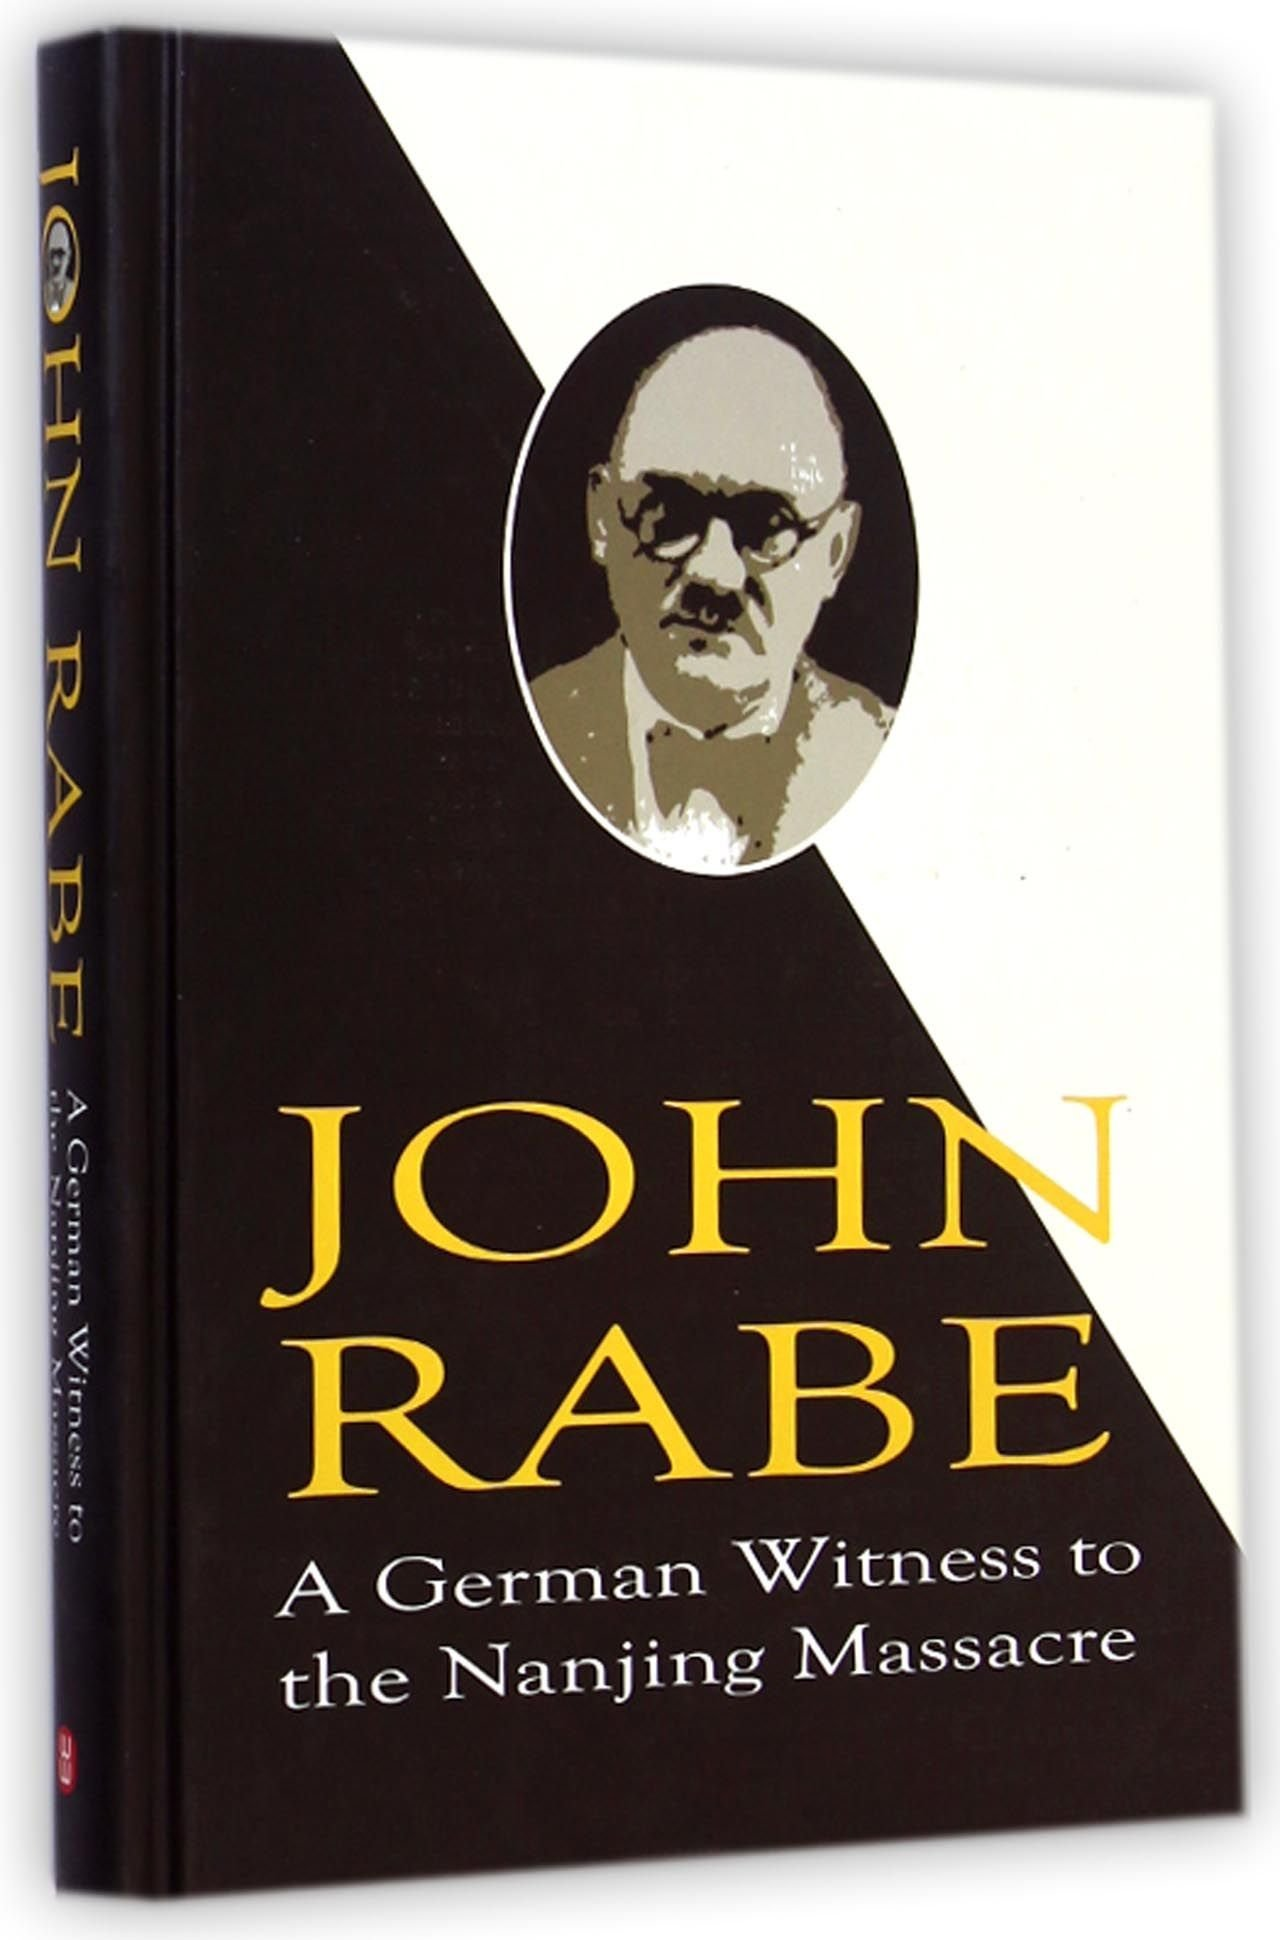 John Rabe: A German Witness to the Nanjing Massacre by Foreign Languages Press